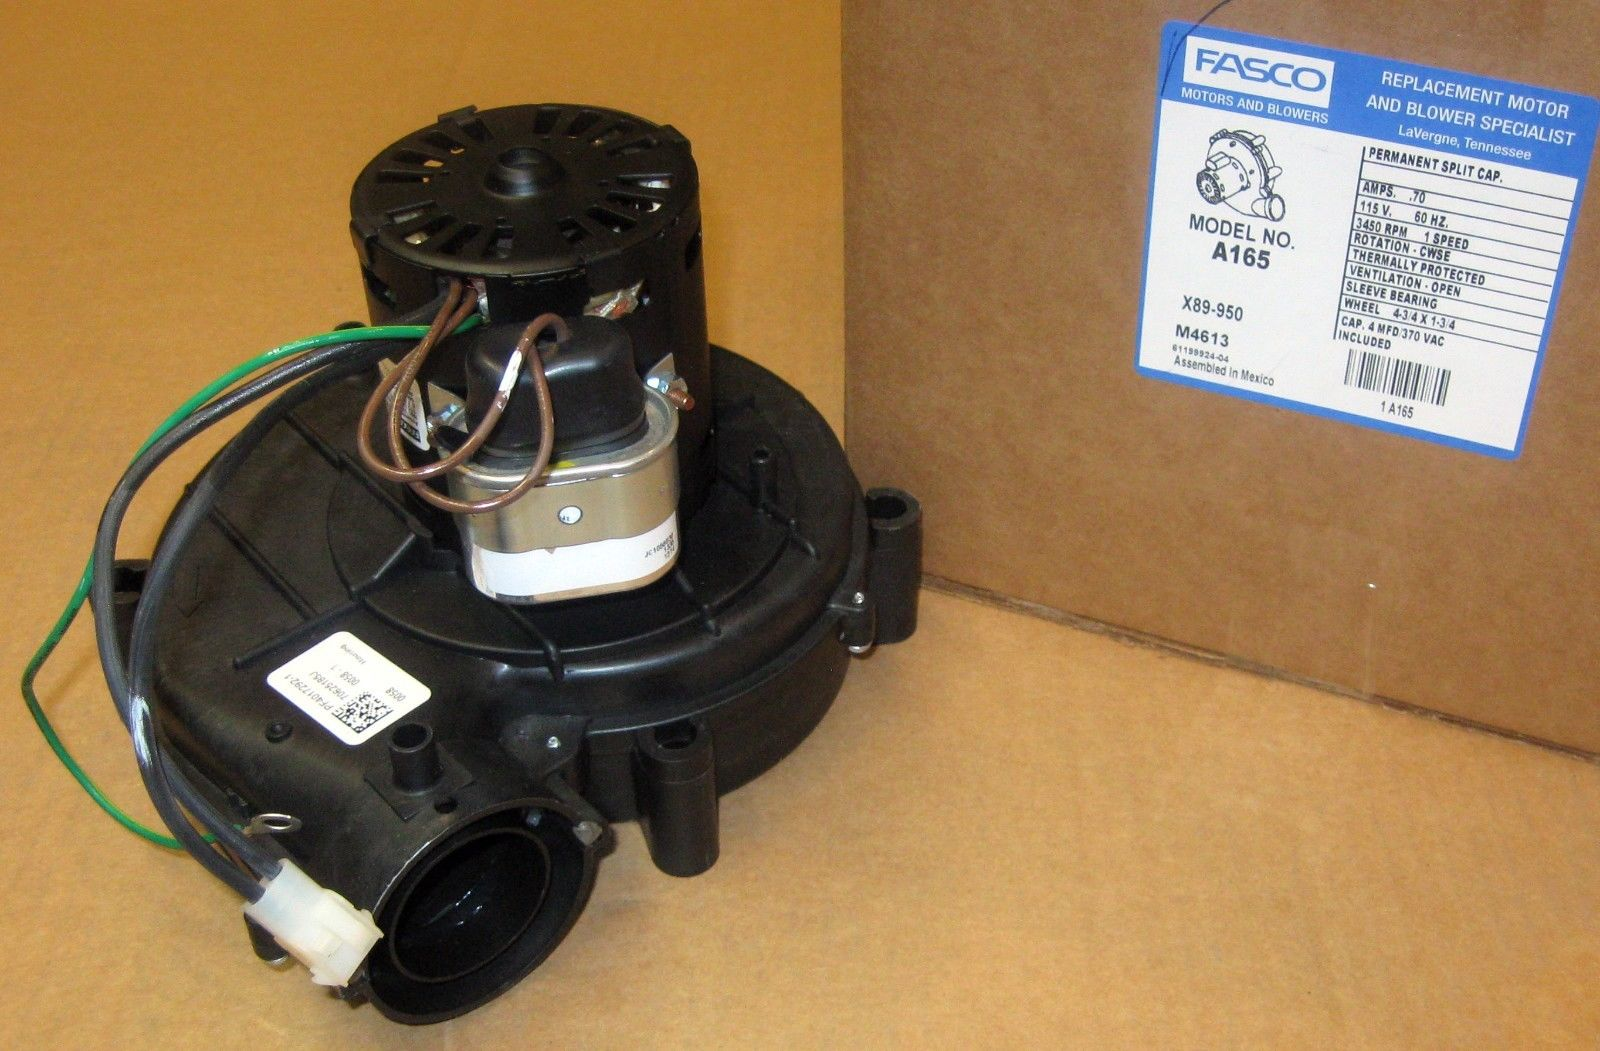 A165 Fasco Furnace Draft Inducer Motor for York 7062-3958 024 ...